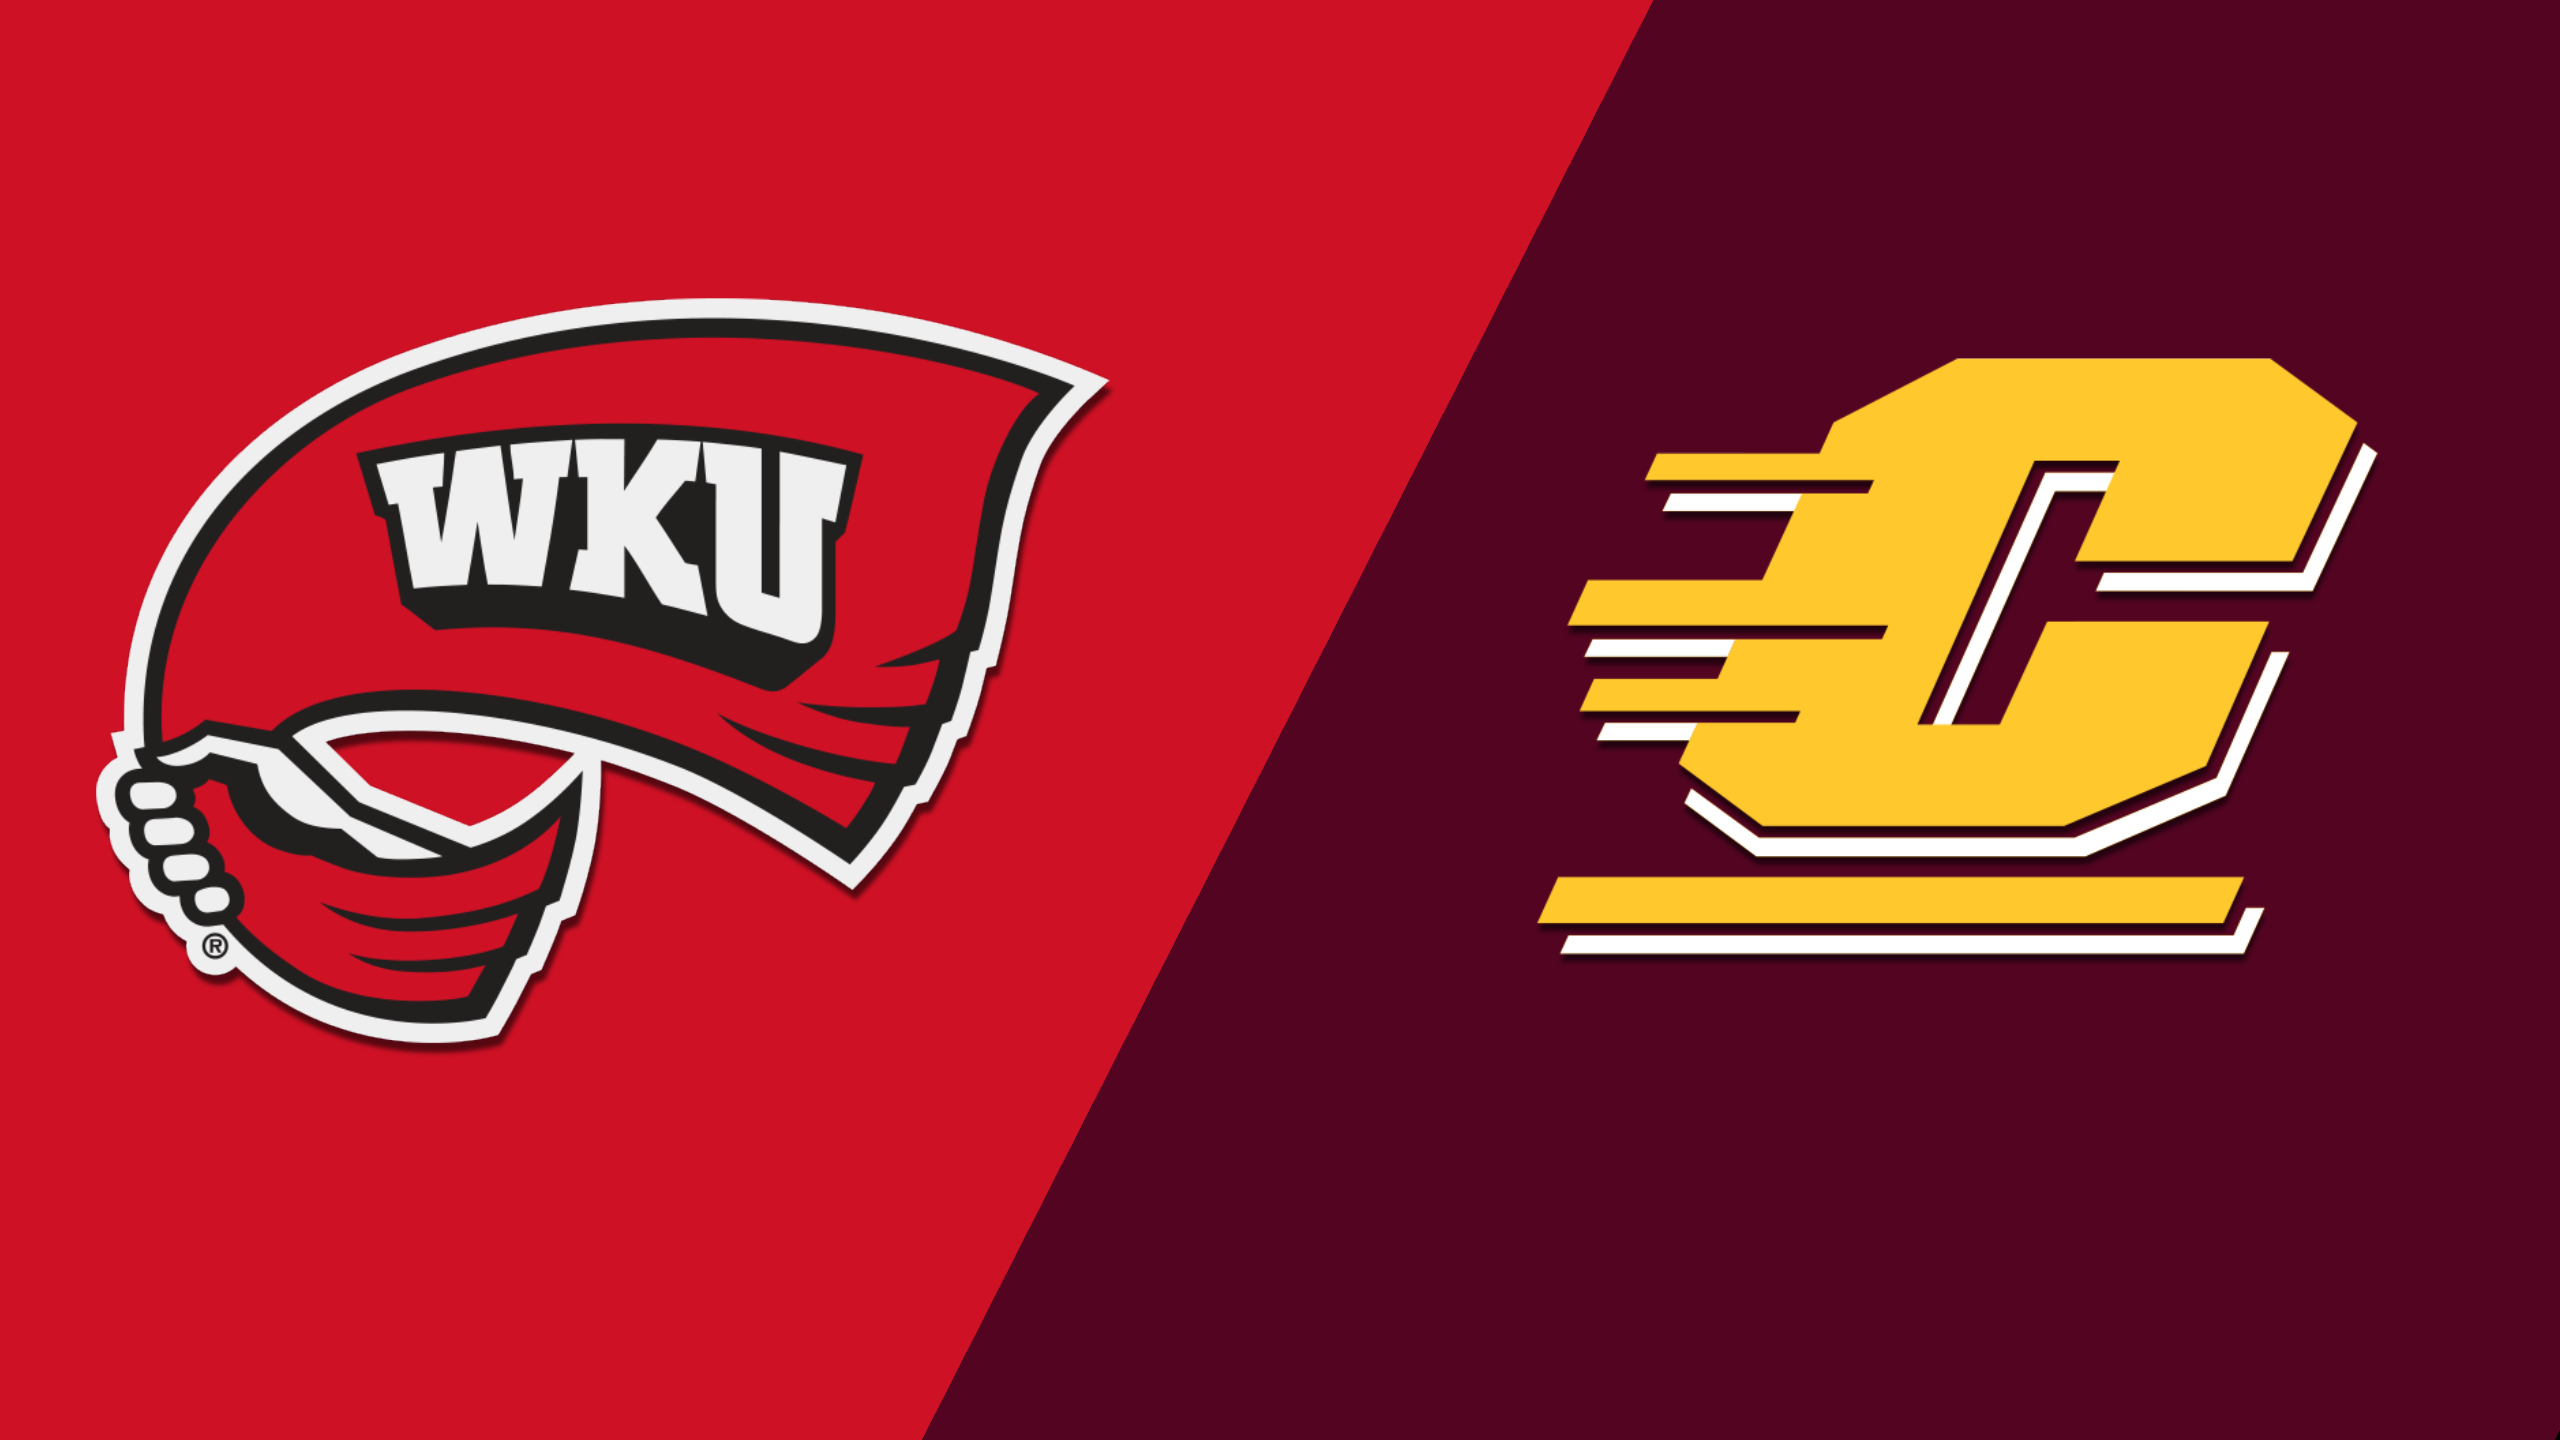 Western Kentucky vs. Central Michigan